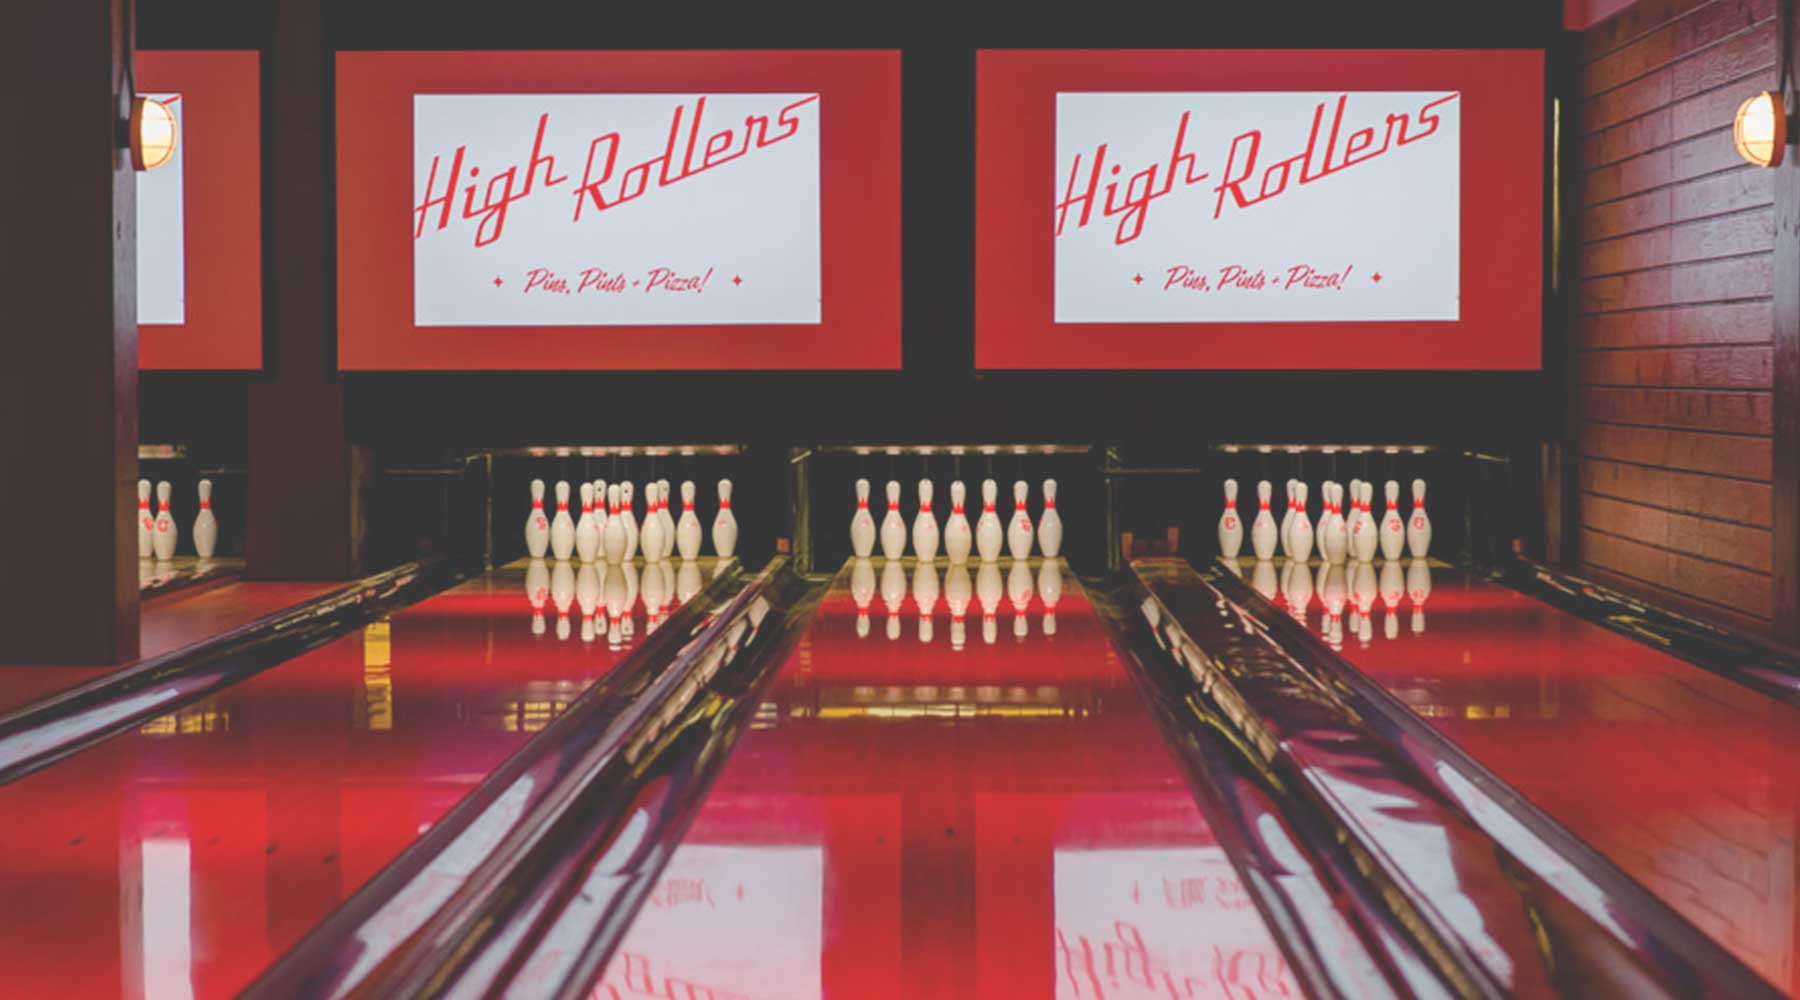 High Rollers | Just Wine